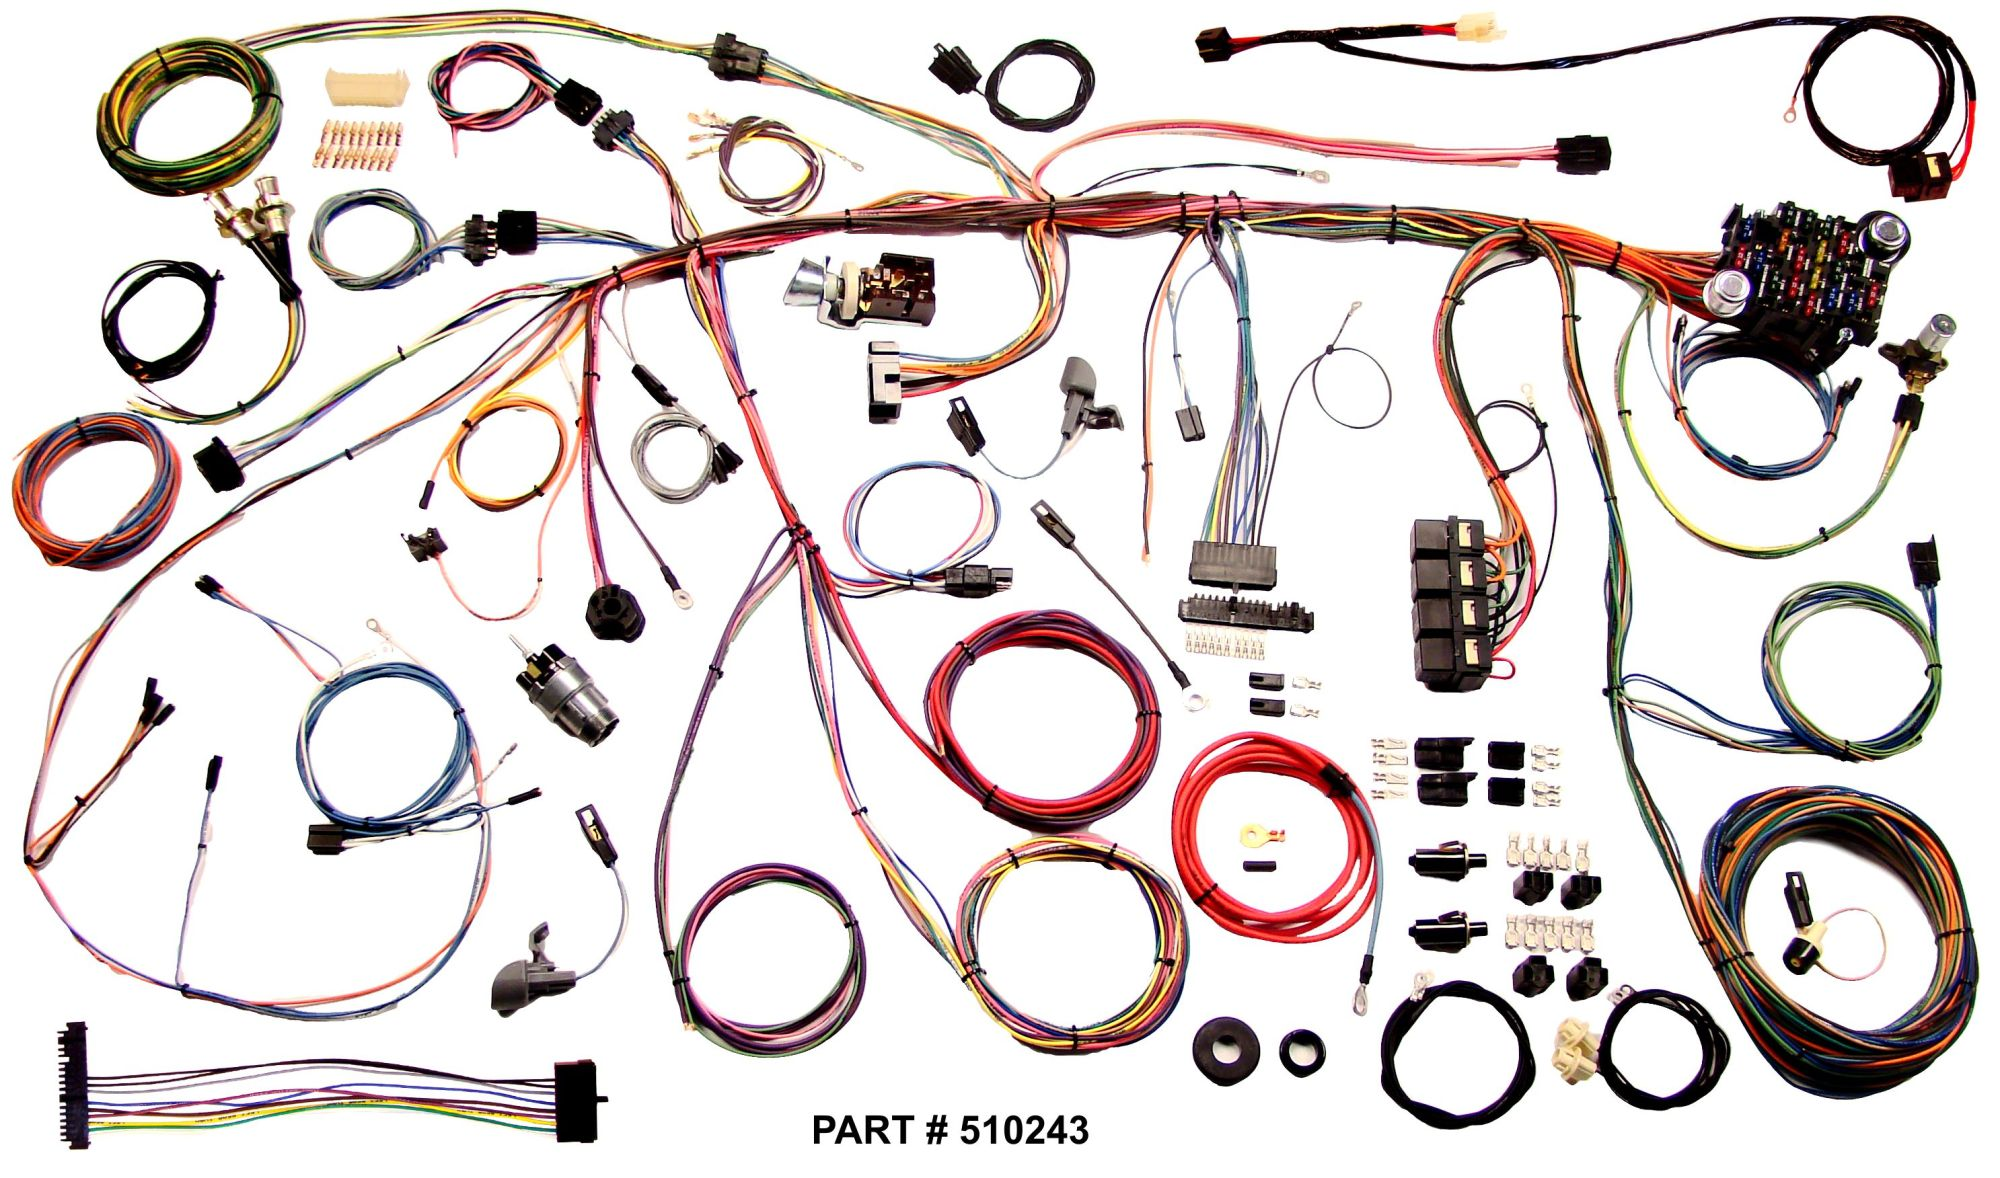 hight resolution of 1970 mustang restomod wiring harness system